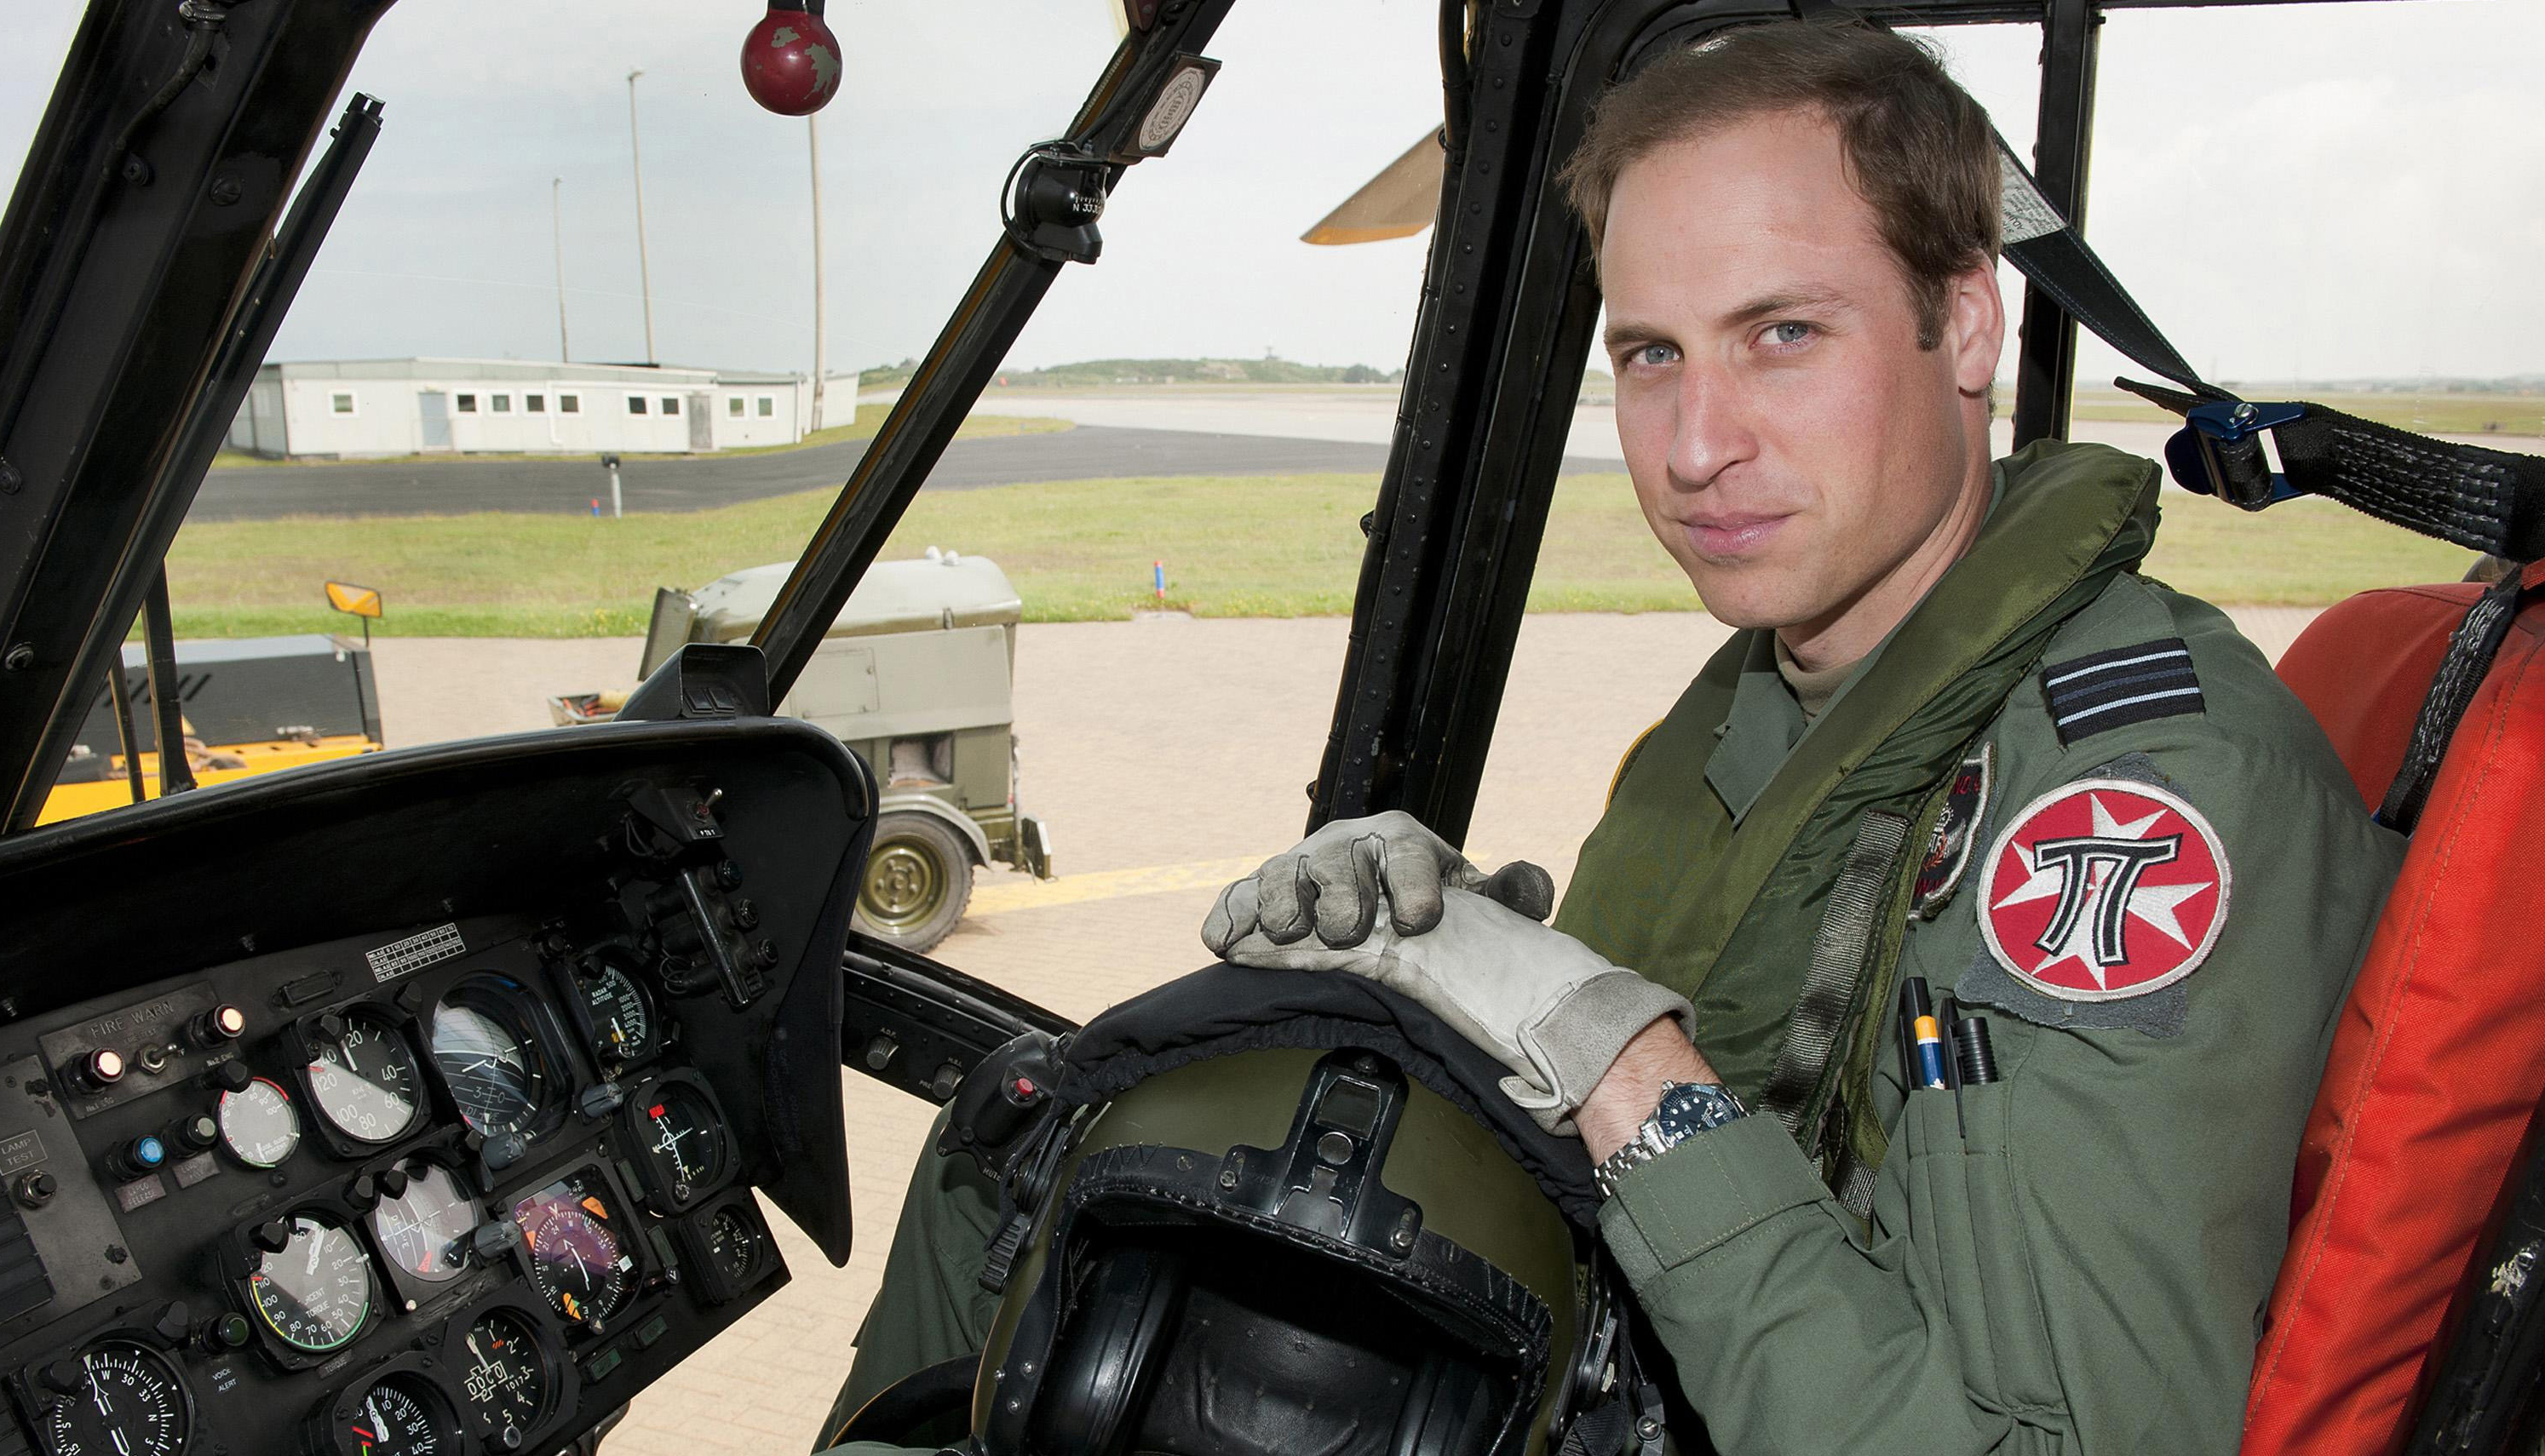 William's final day as pilot before Royal challenge